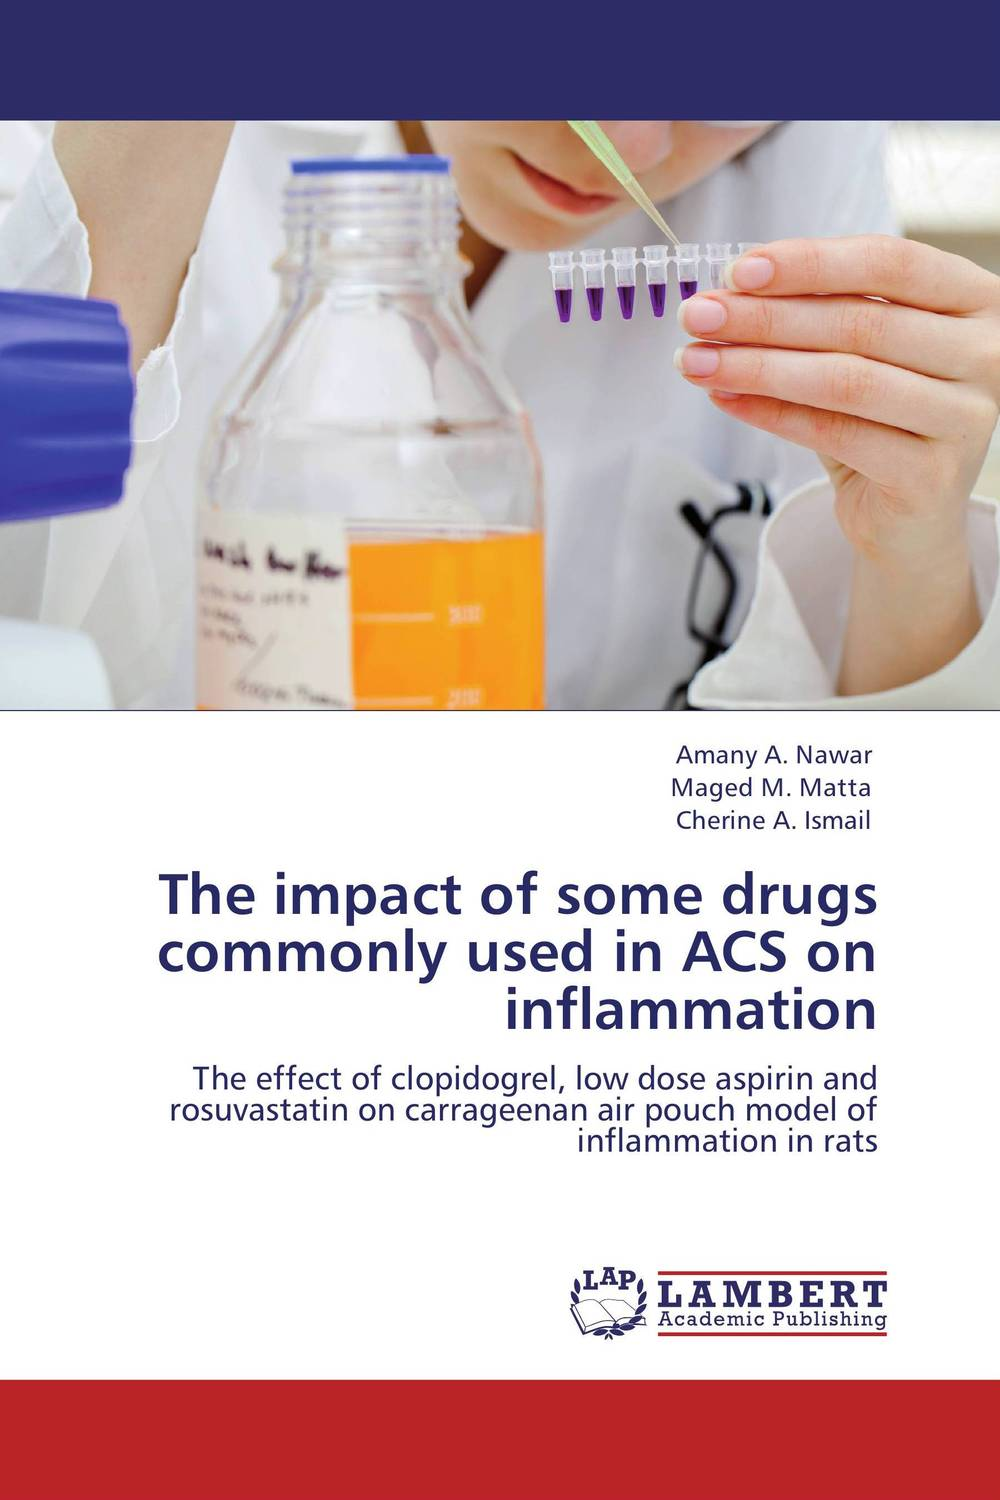 The impact of some drugs commonly used in ACS on inflammation some thoughts on the common toad